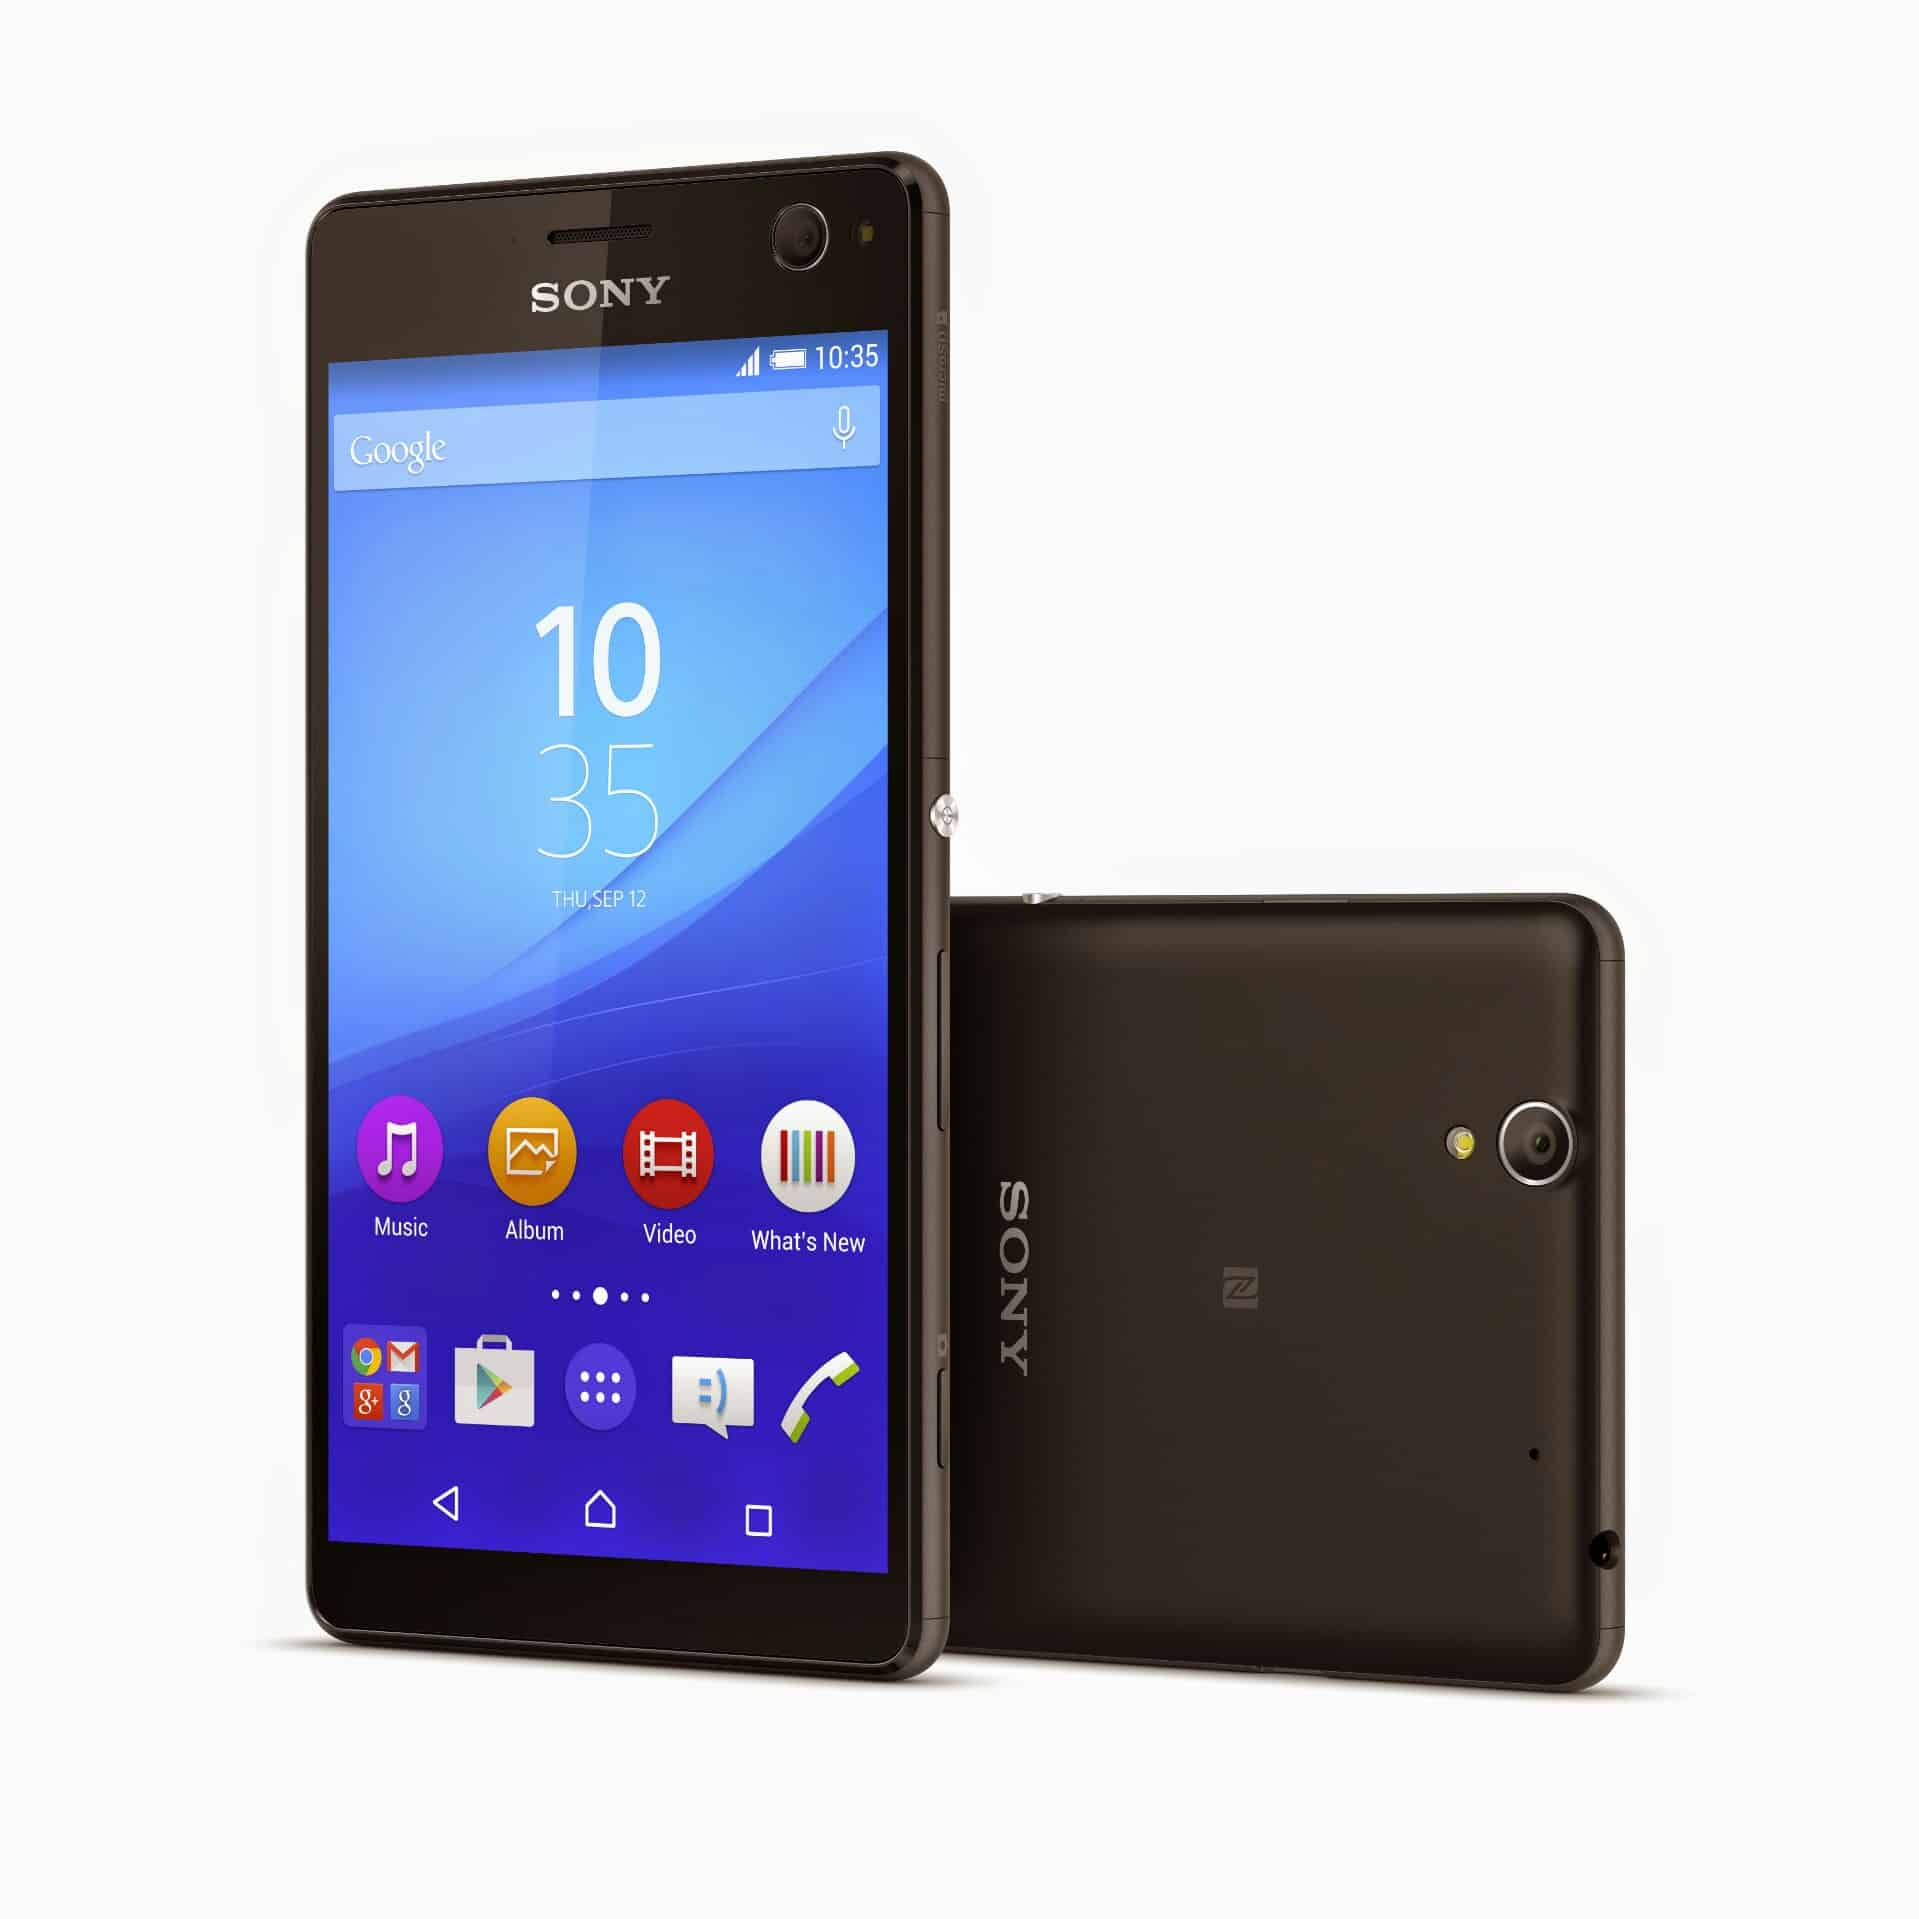 Sony Xperia C4 press images_6